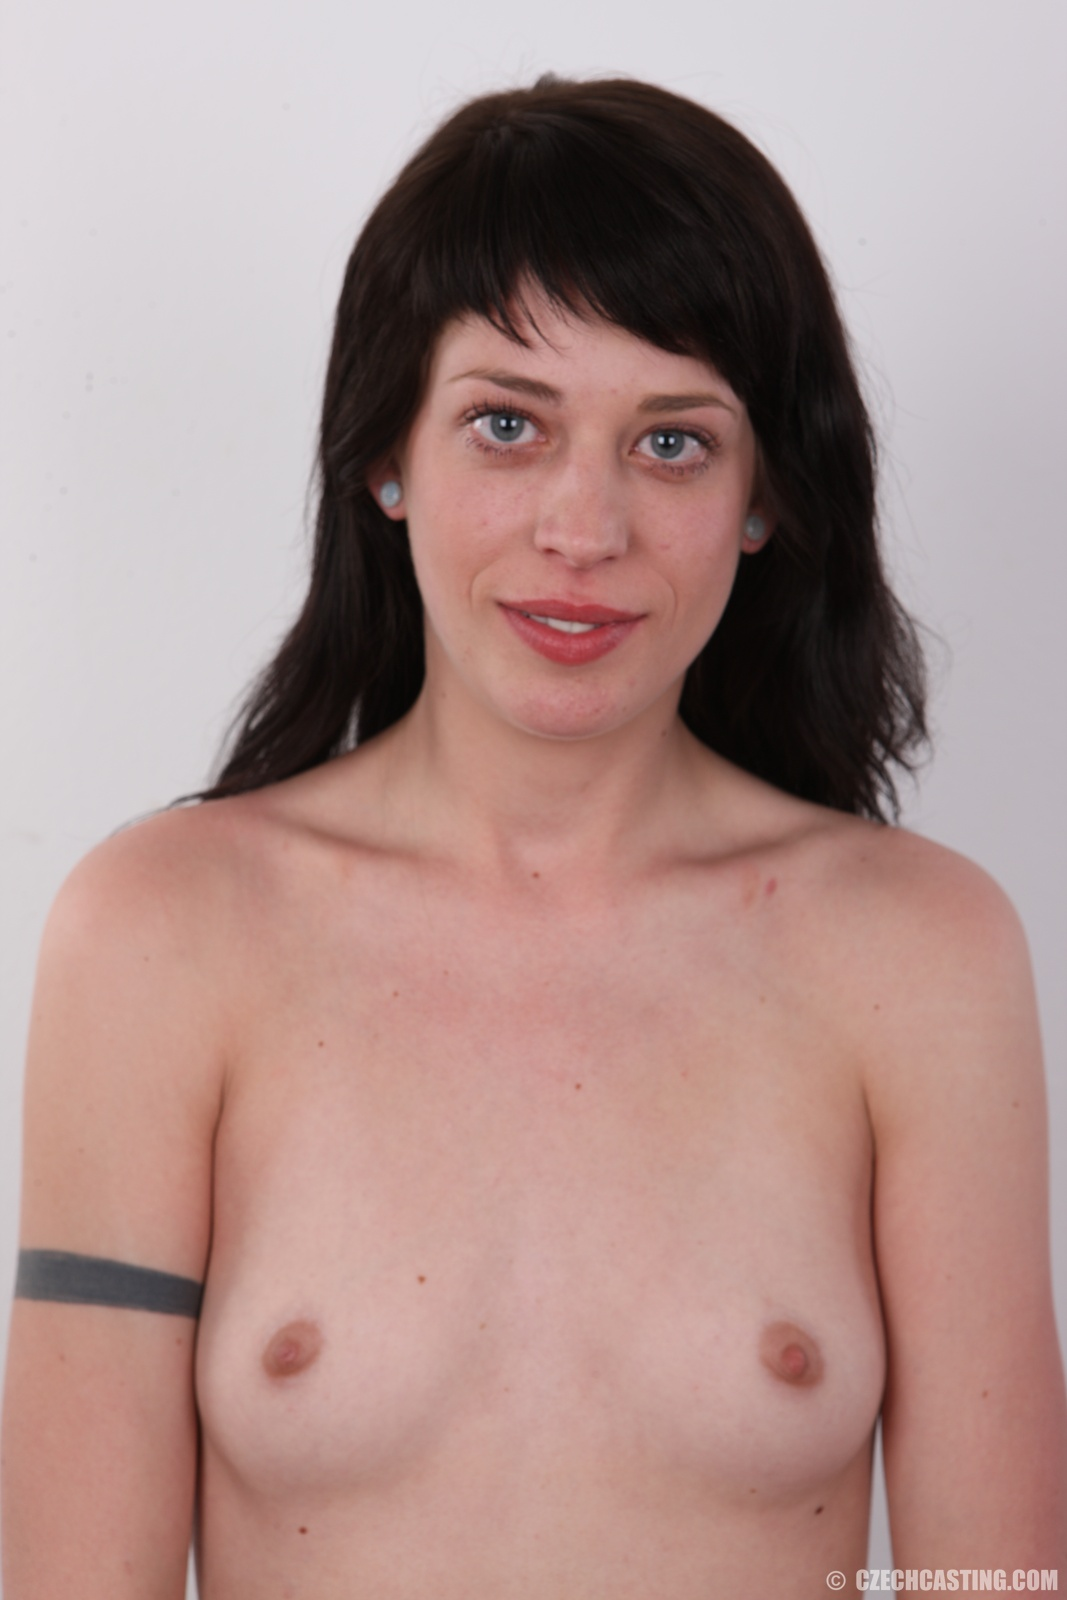 Czech Casting 568053 Vendula If Veronika Takes A Decision To Shoot Adult Movies, She'S Sure To Become A BDSM Star! This Slender Black-Haired Babe Is Deeply Into Submission. She Gets Turned On By Pain, Humiliation, Being Helpless And Manipulated Against Her Will. Being As